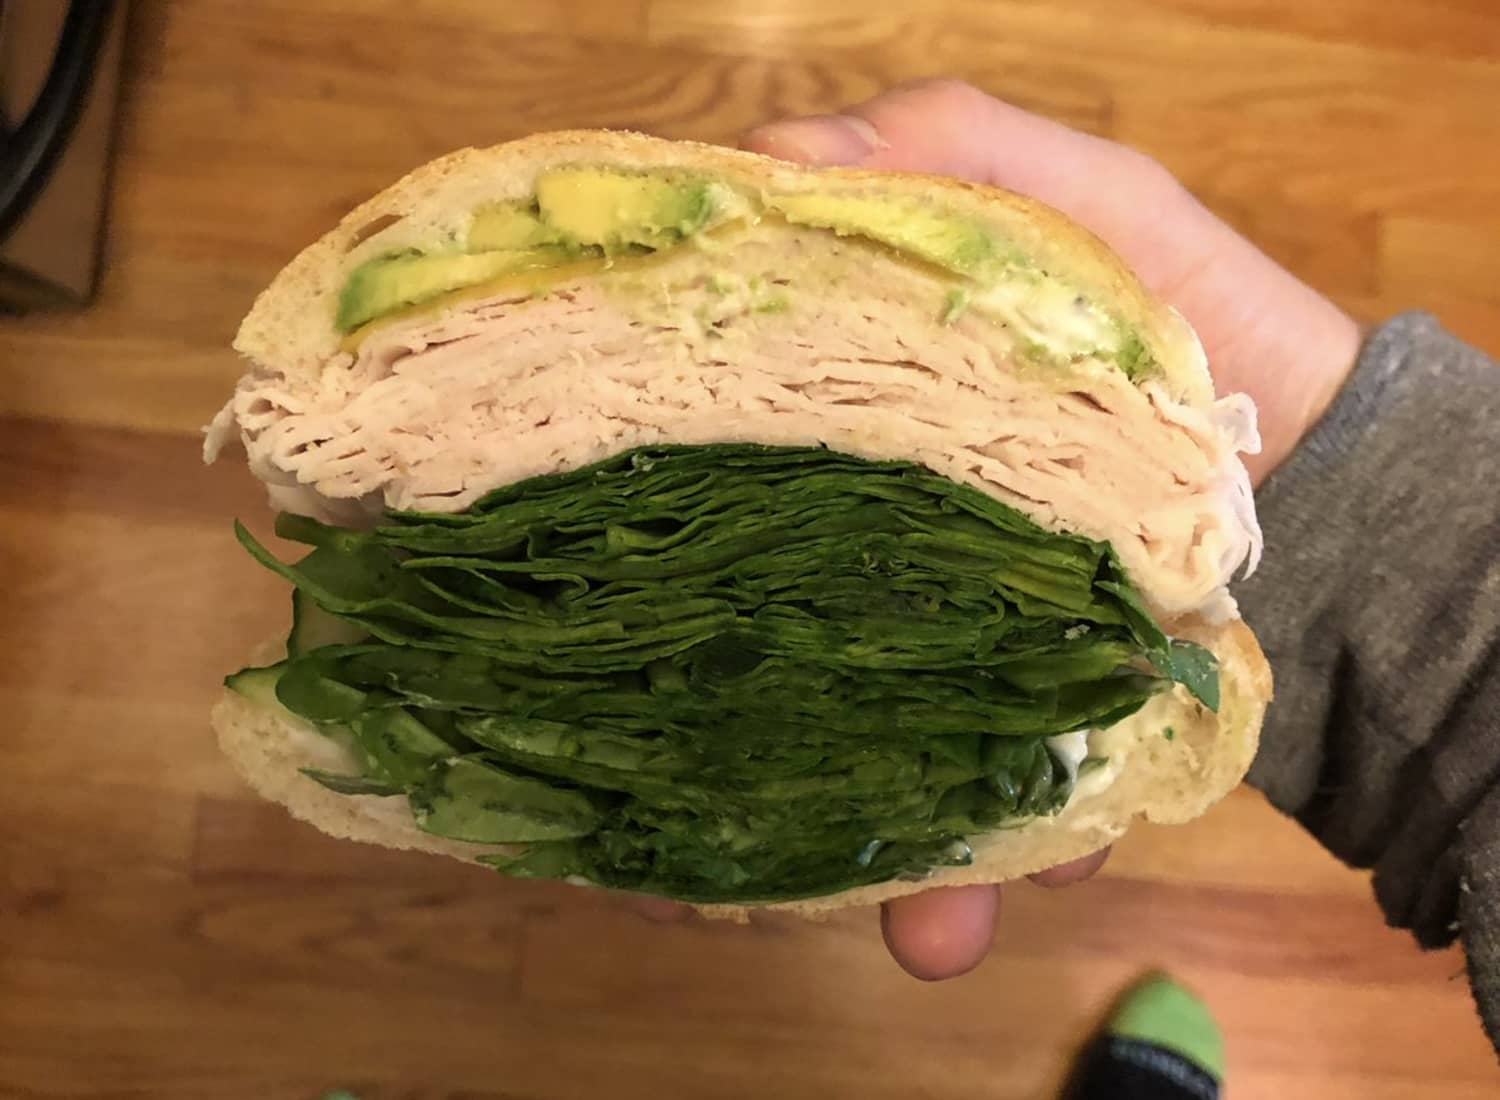 Twitter Reacts to This Outrageous Sandwich That Is Mostly Just Spinach